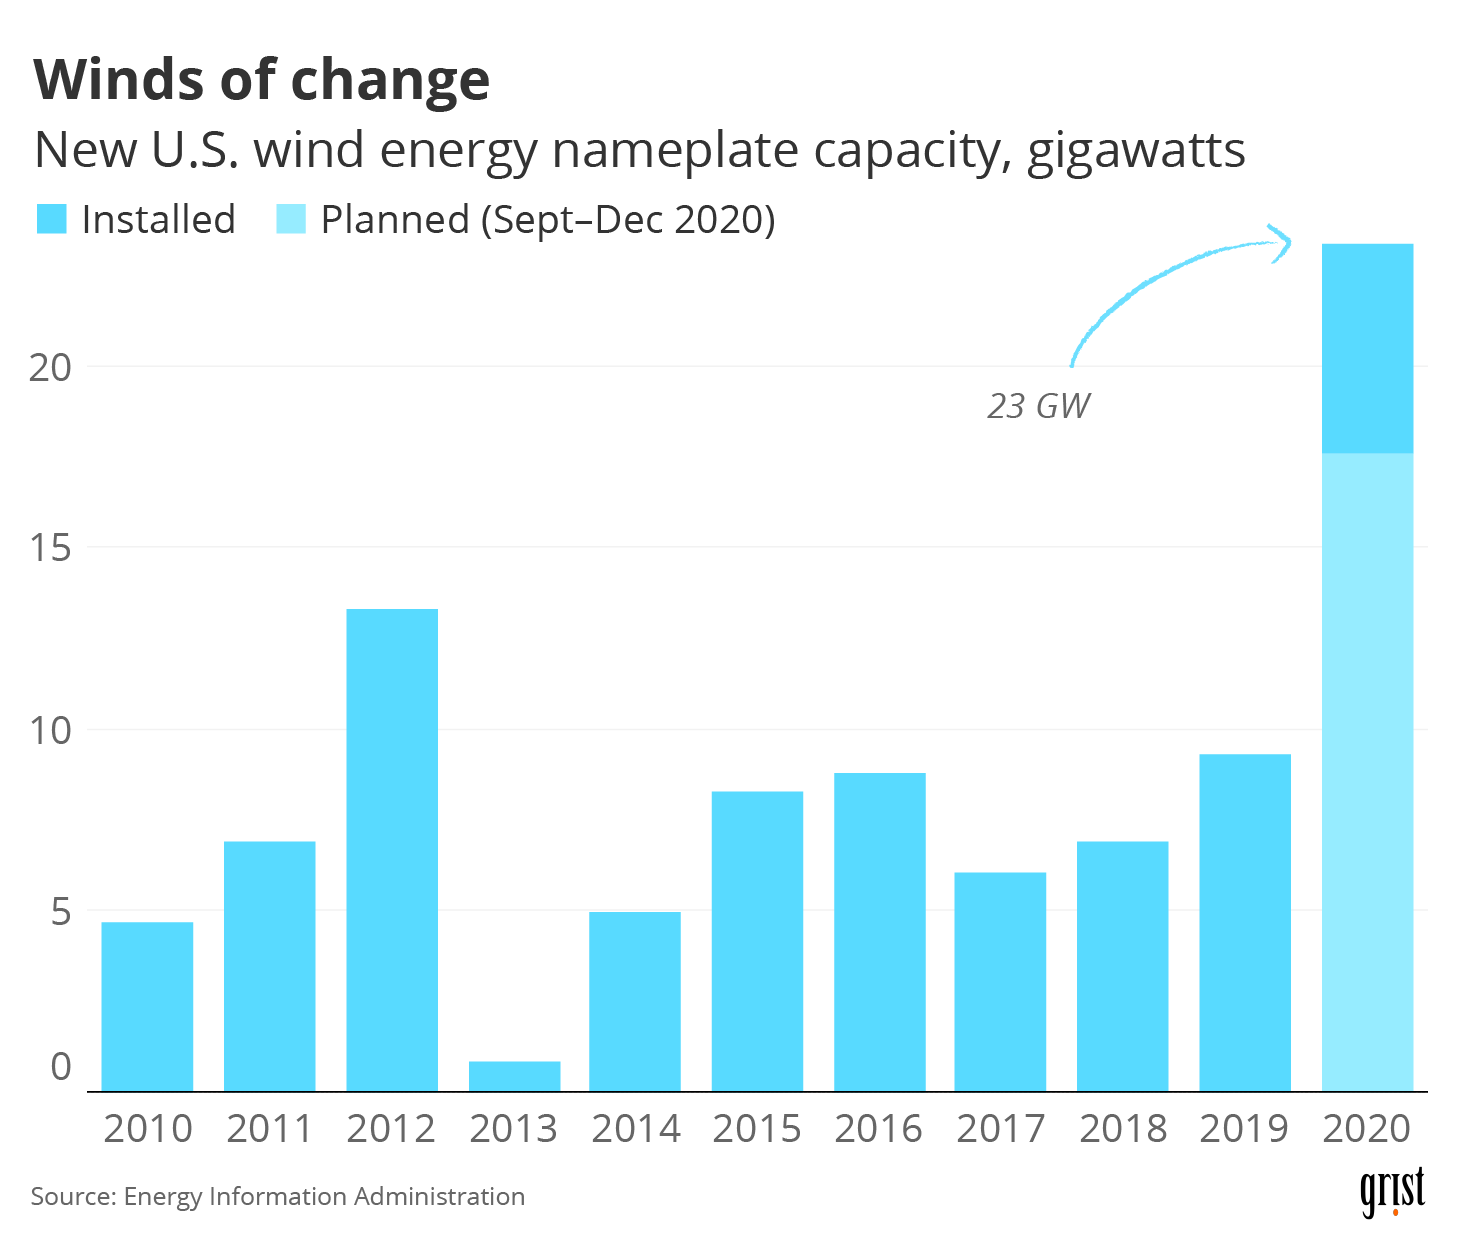 A bar chart showing new U.S. wind energy capacity (in gigawatts) installed over time. At 23 GW, 2020 saw the highest projected level of installations.